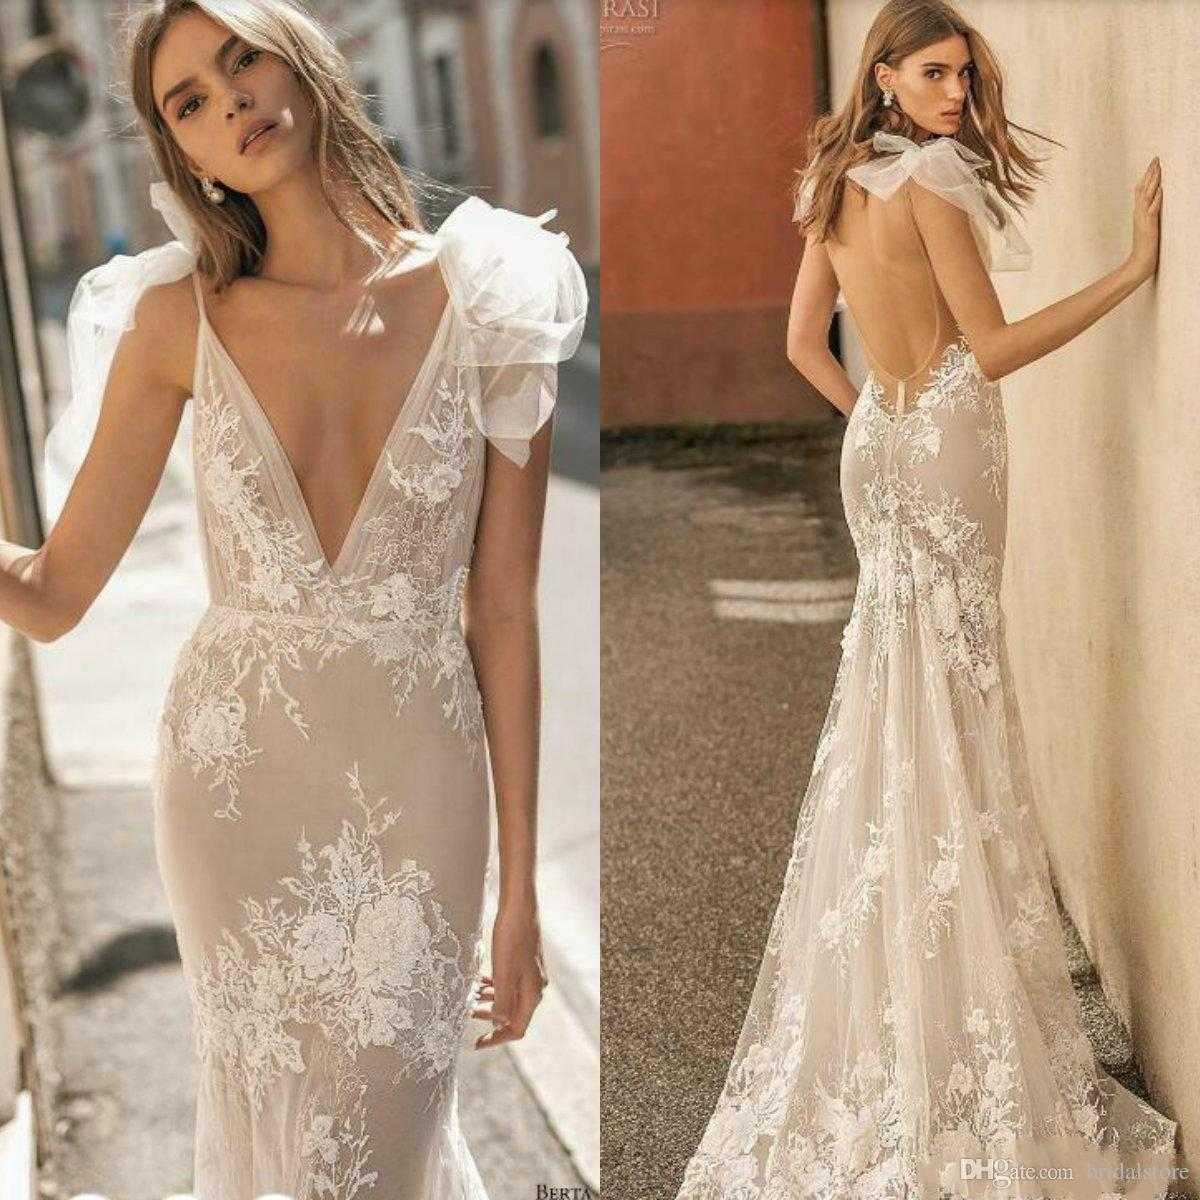 Berta Privée 2019 Wedding Dresses Design Deep V Neck Sexy Spaghetti Mermaid Wedding Dress With Lace Appliques Illusion Bridal Gowns Backless